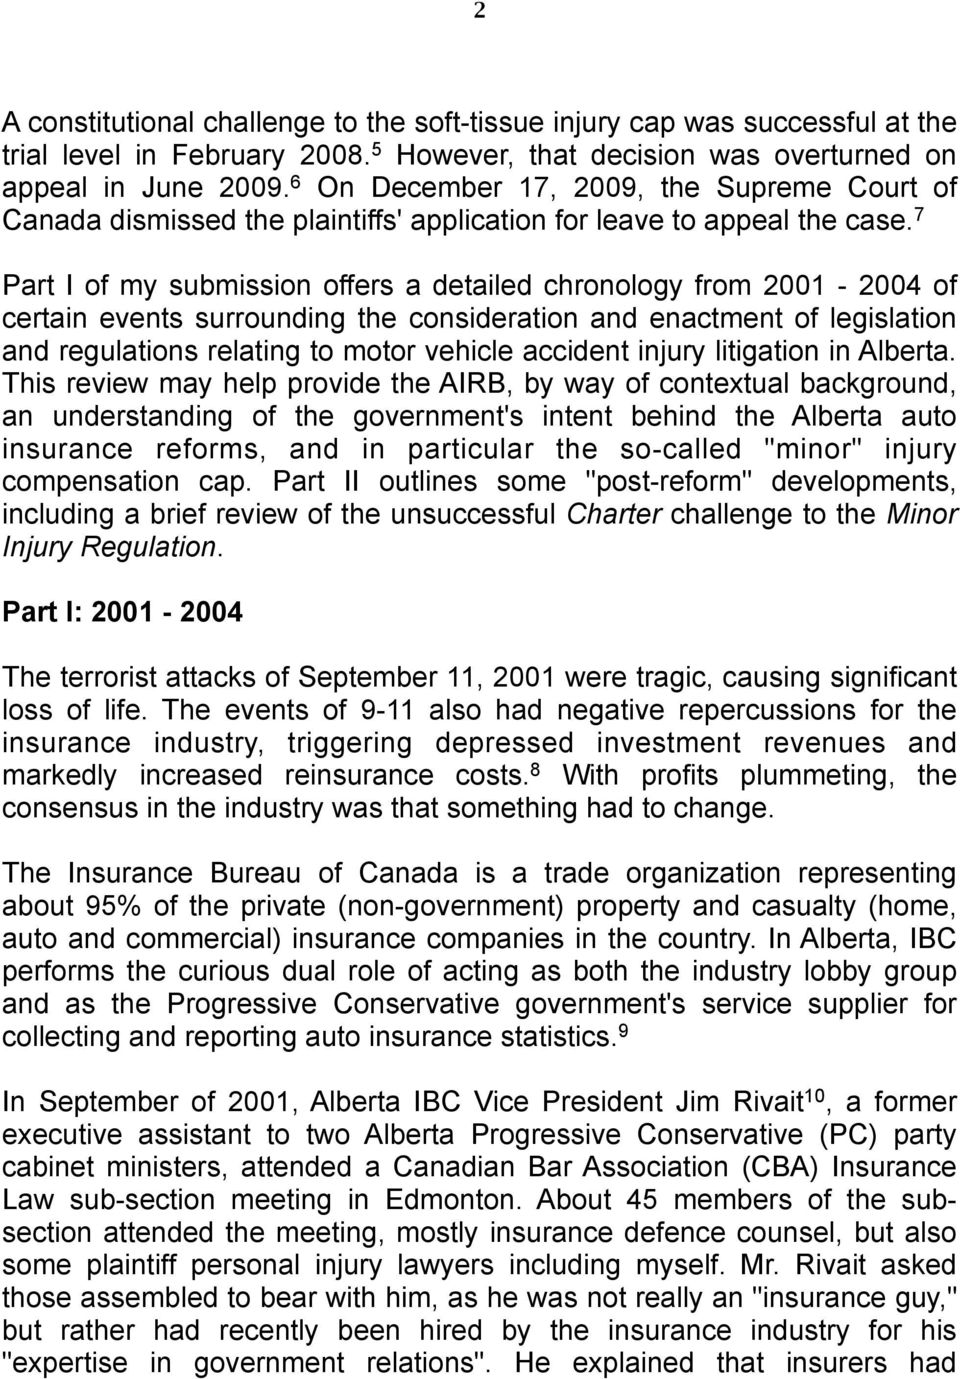 7 Part I of my submission offers a detailed chronology from 2001-2004 of certain events surrounding the consideration and enactment of legislation and regulations relating to motor vehicle accident